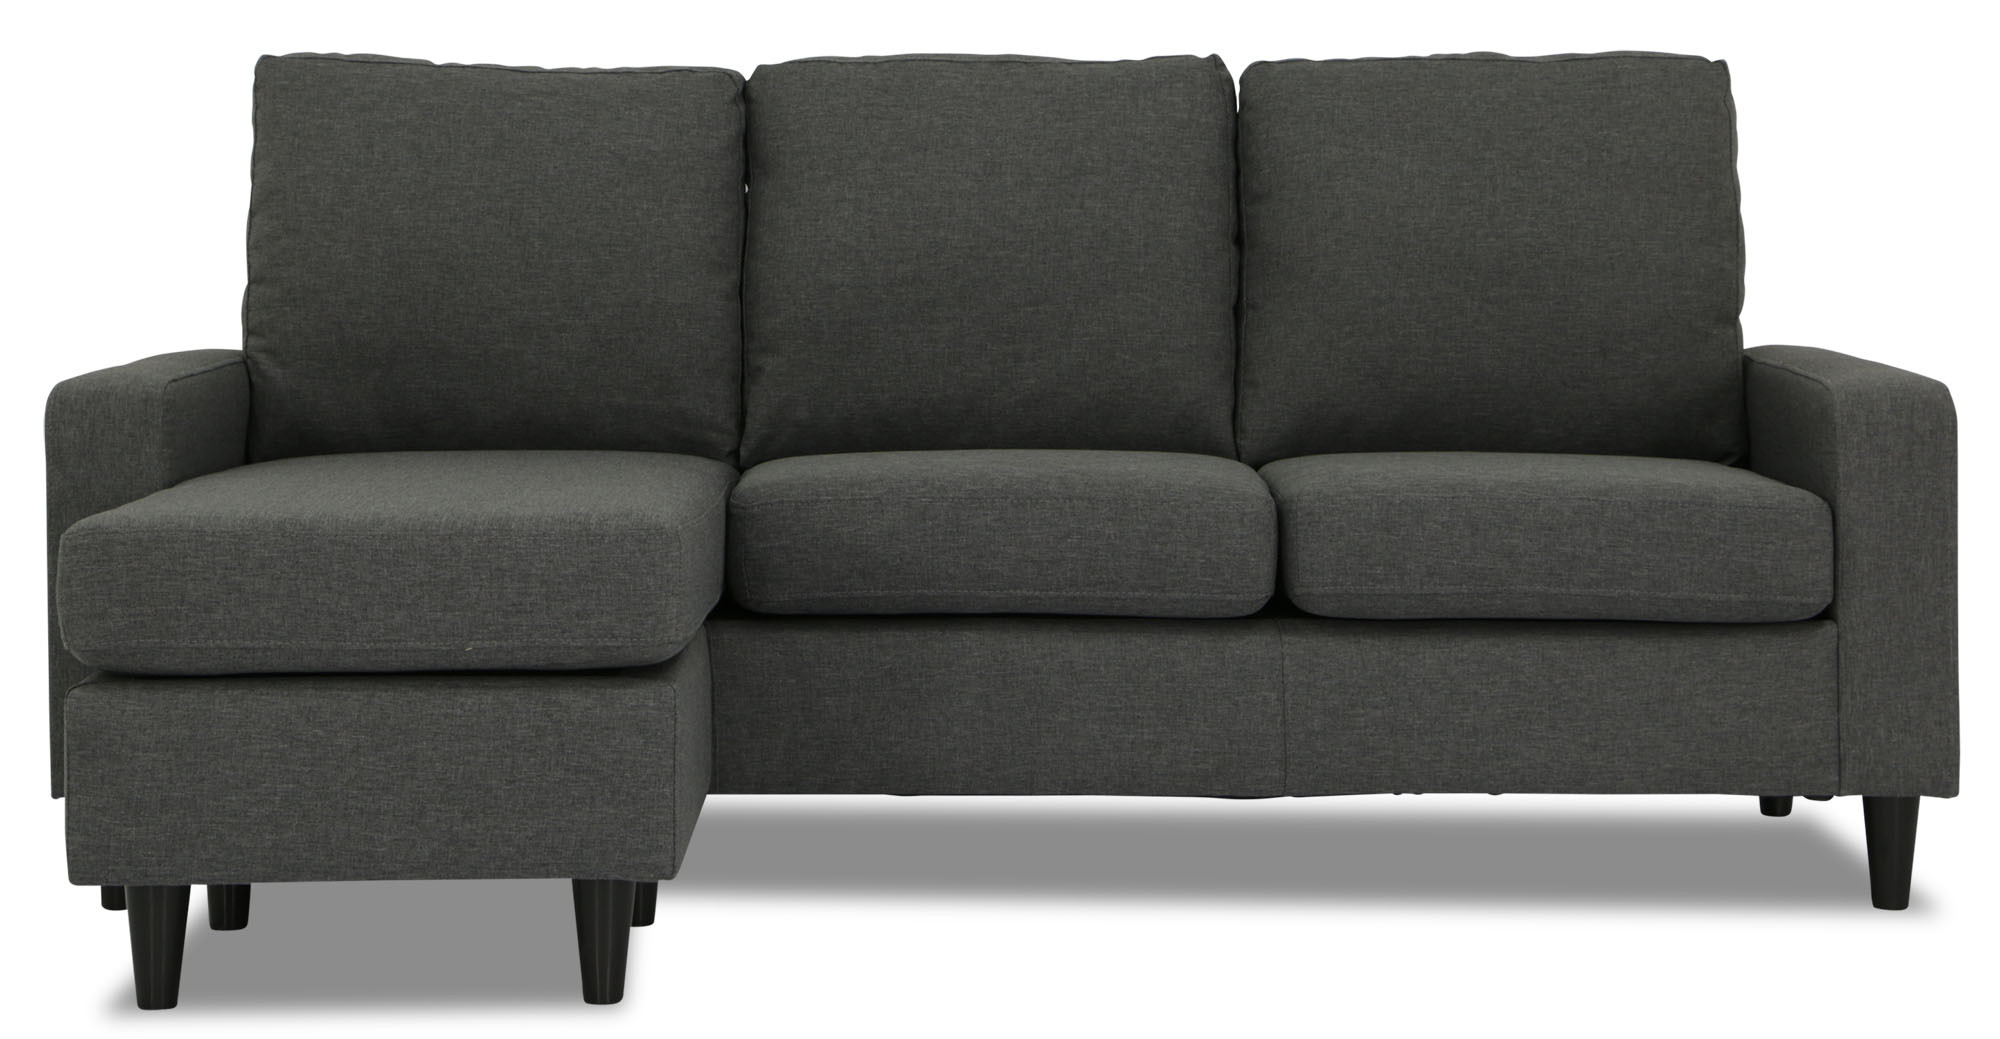 Ejiro L Shape Sofa in Grey Furniture & Home Décor